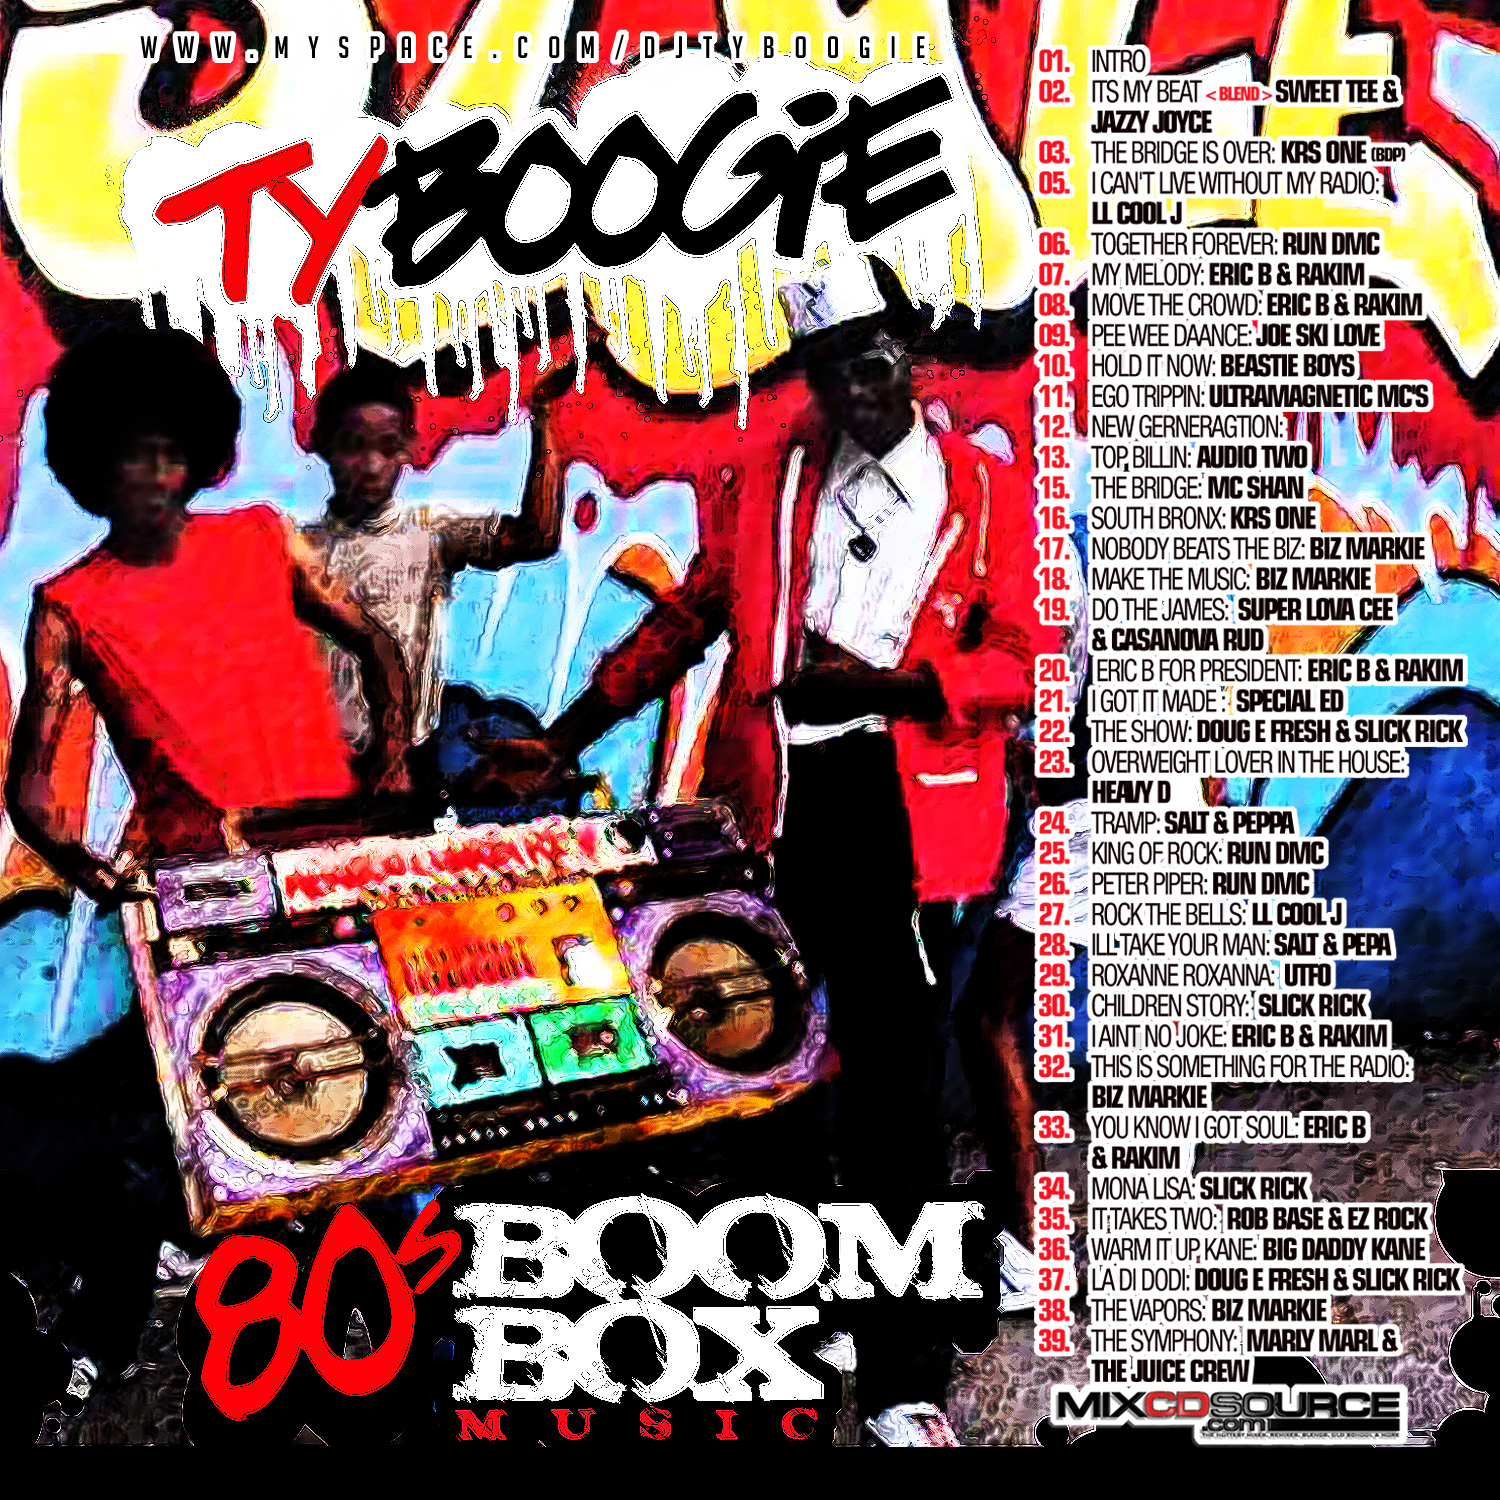 80 s boom box music dj ty boogie for 80s house music mix